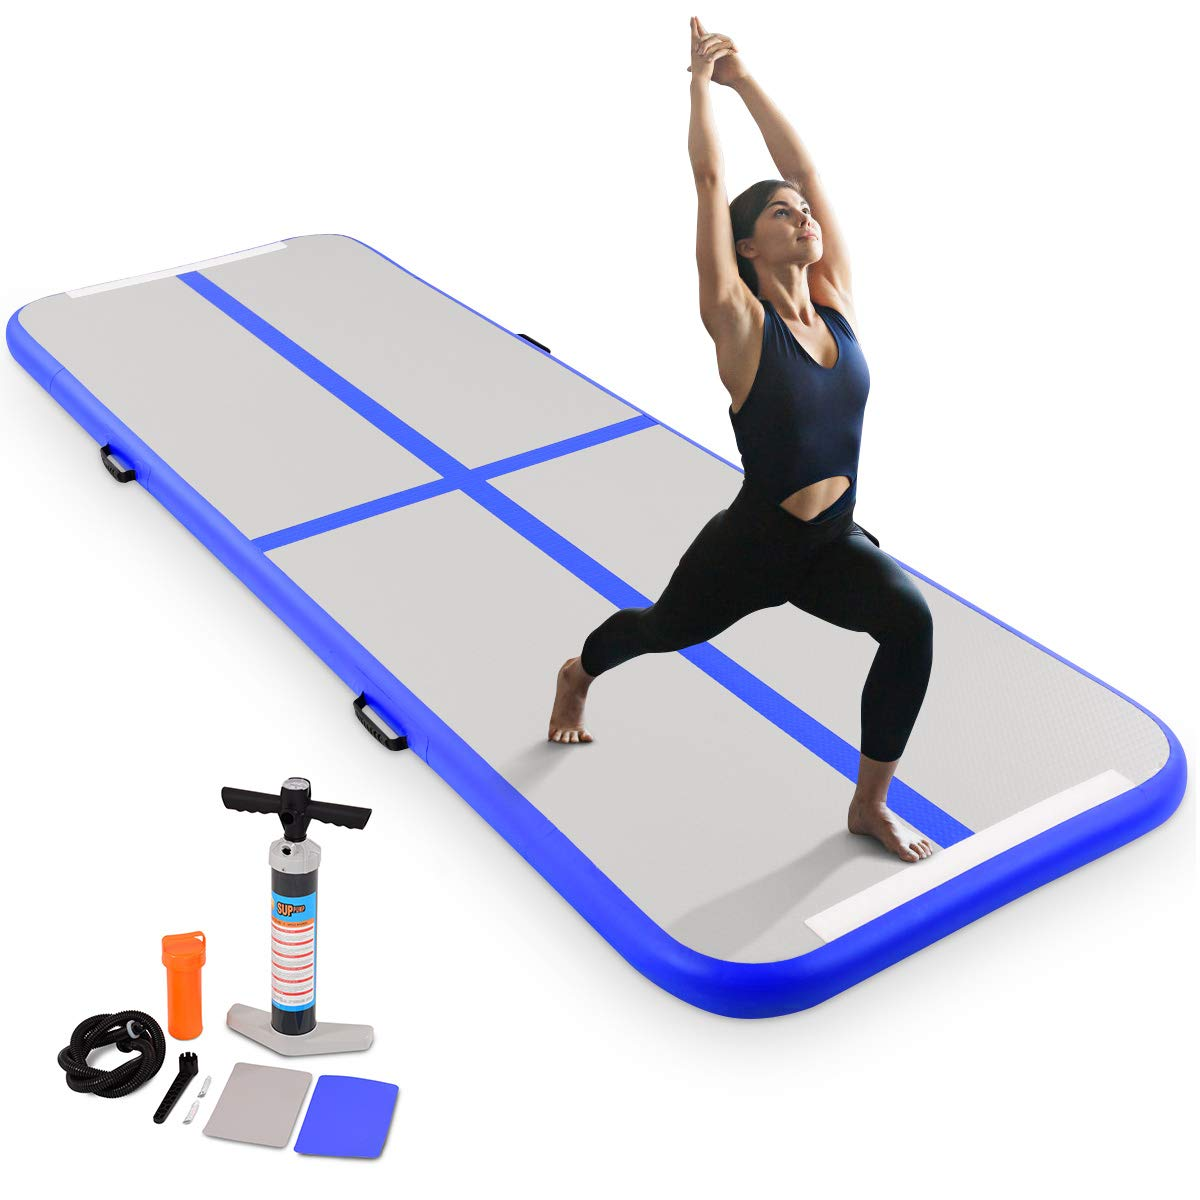 Goplus 10FT Inflatable Gymnastic Air Track, Portable Tumbling Mat, with Pump, for Cheerleading Practice Beach Park Home use